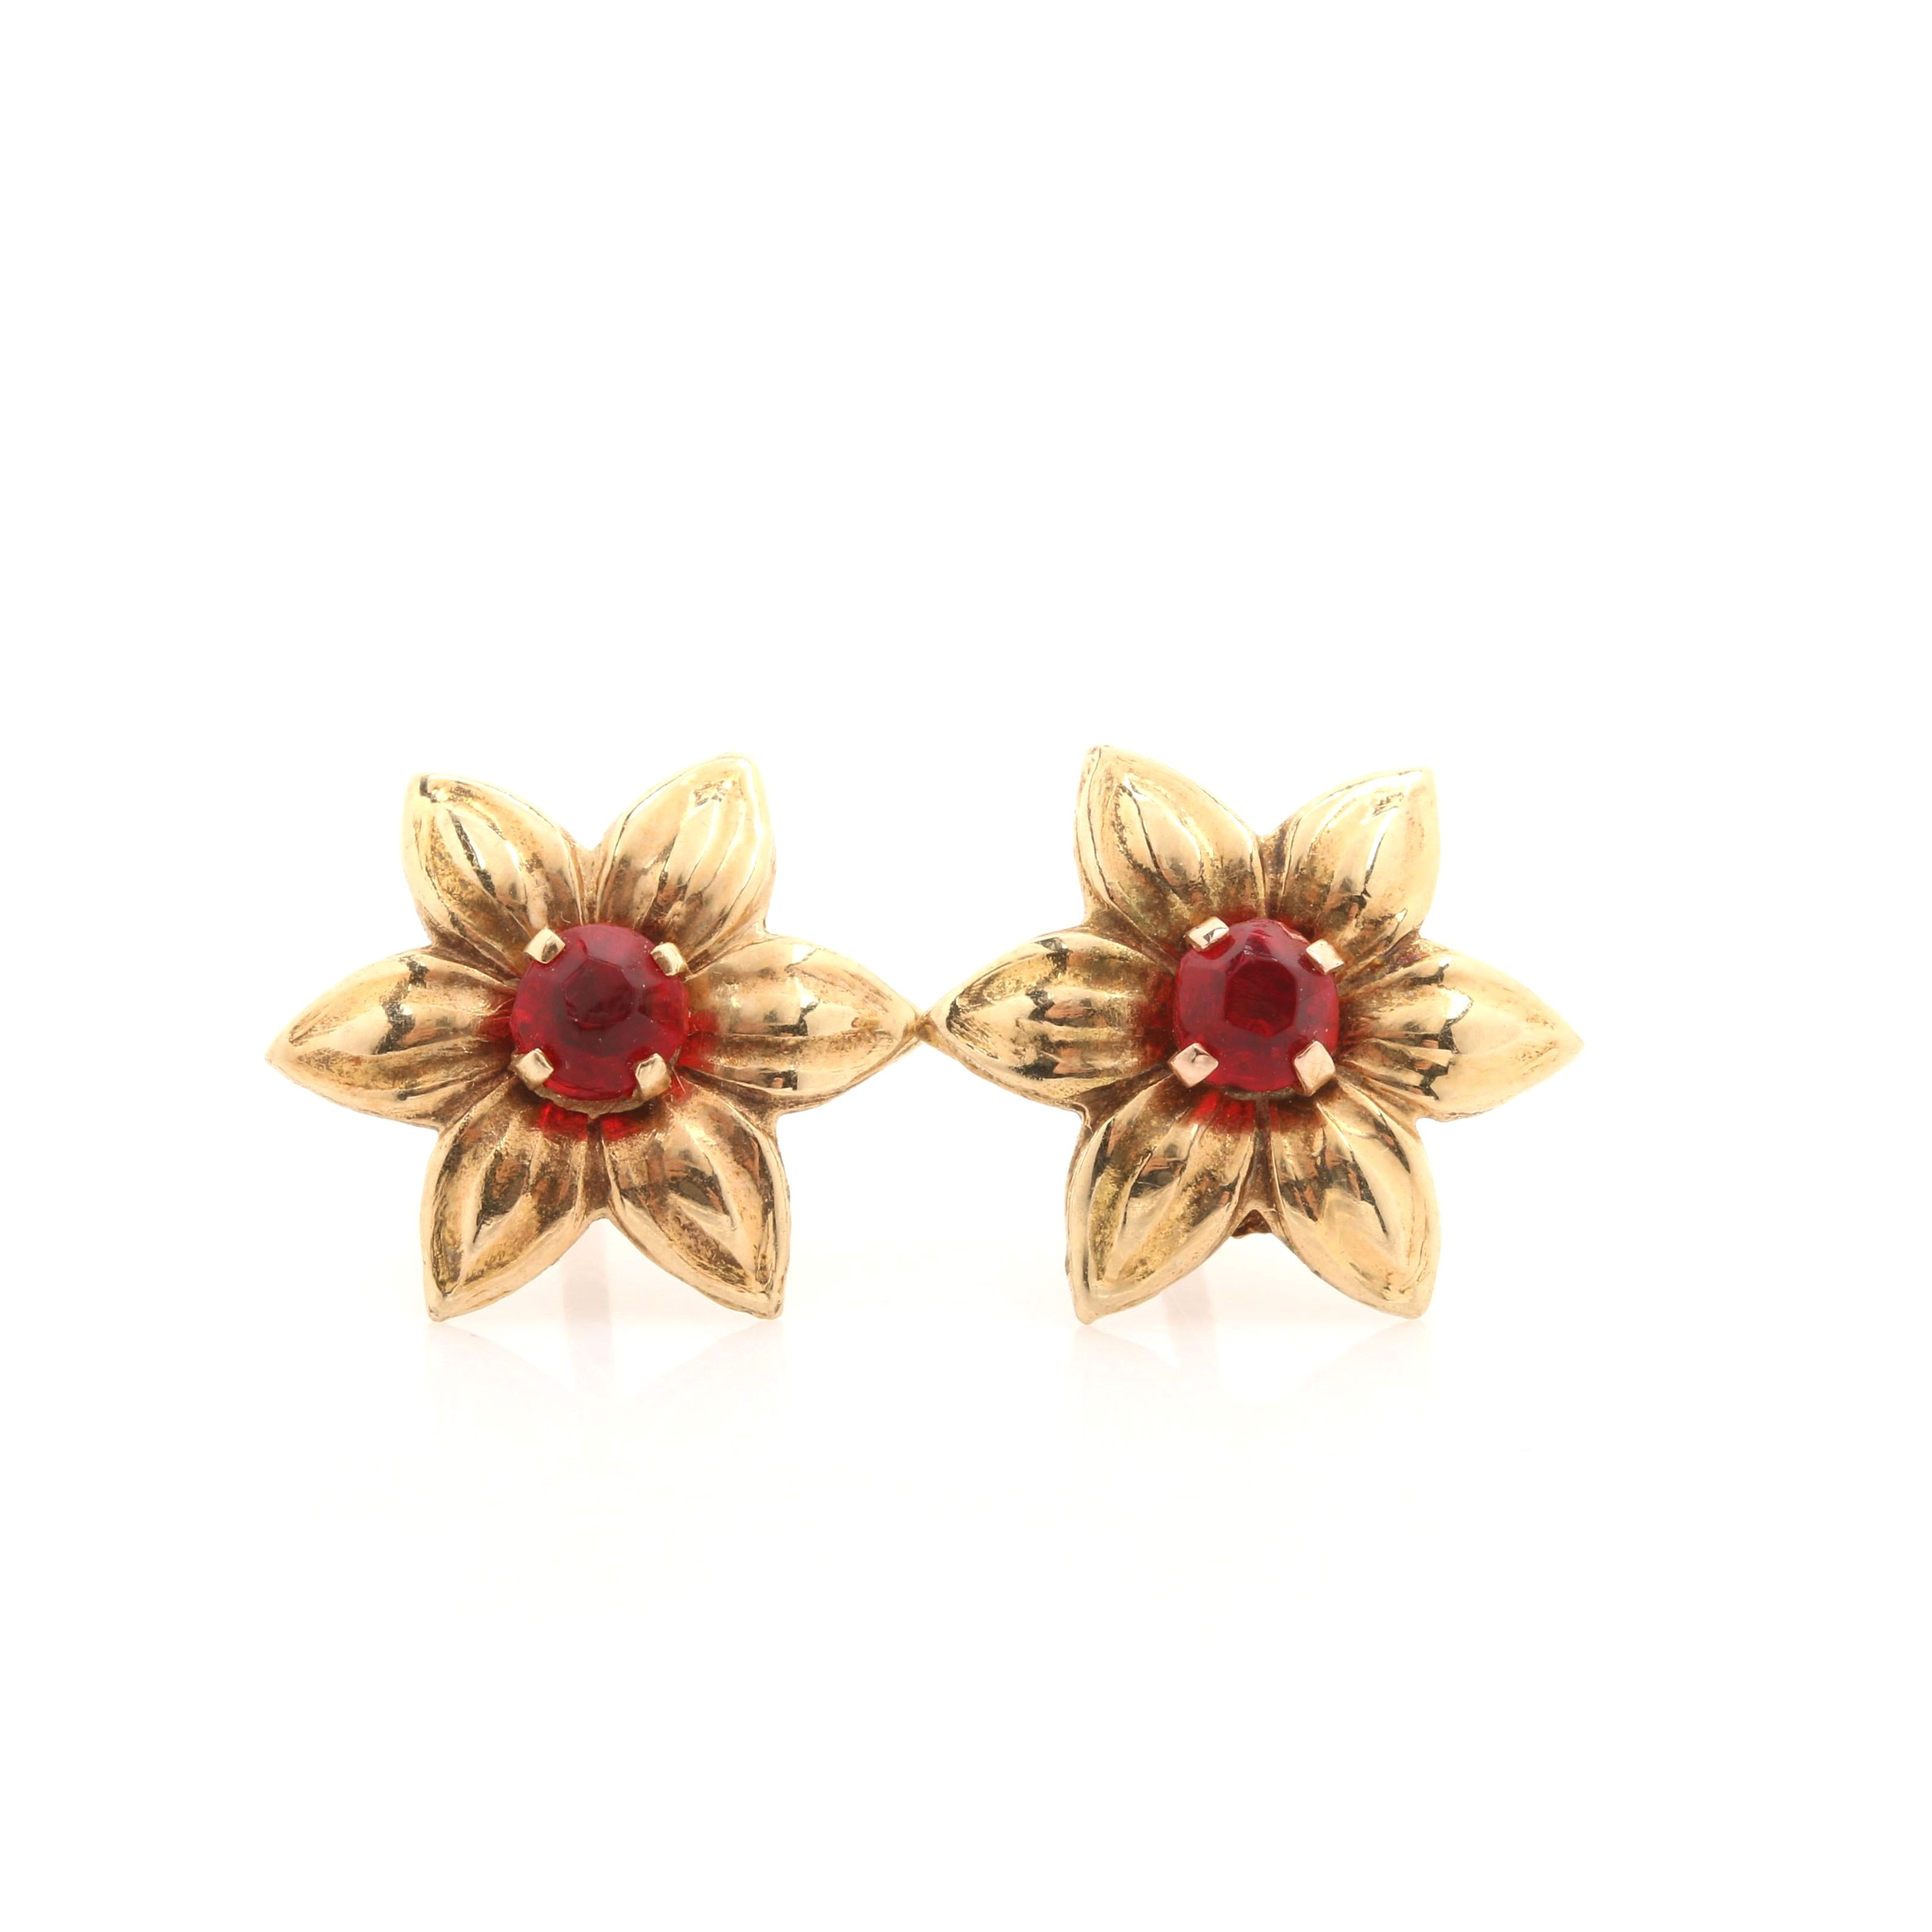 14K Yellow Gold Red Glass Flower Stud Earrings